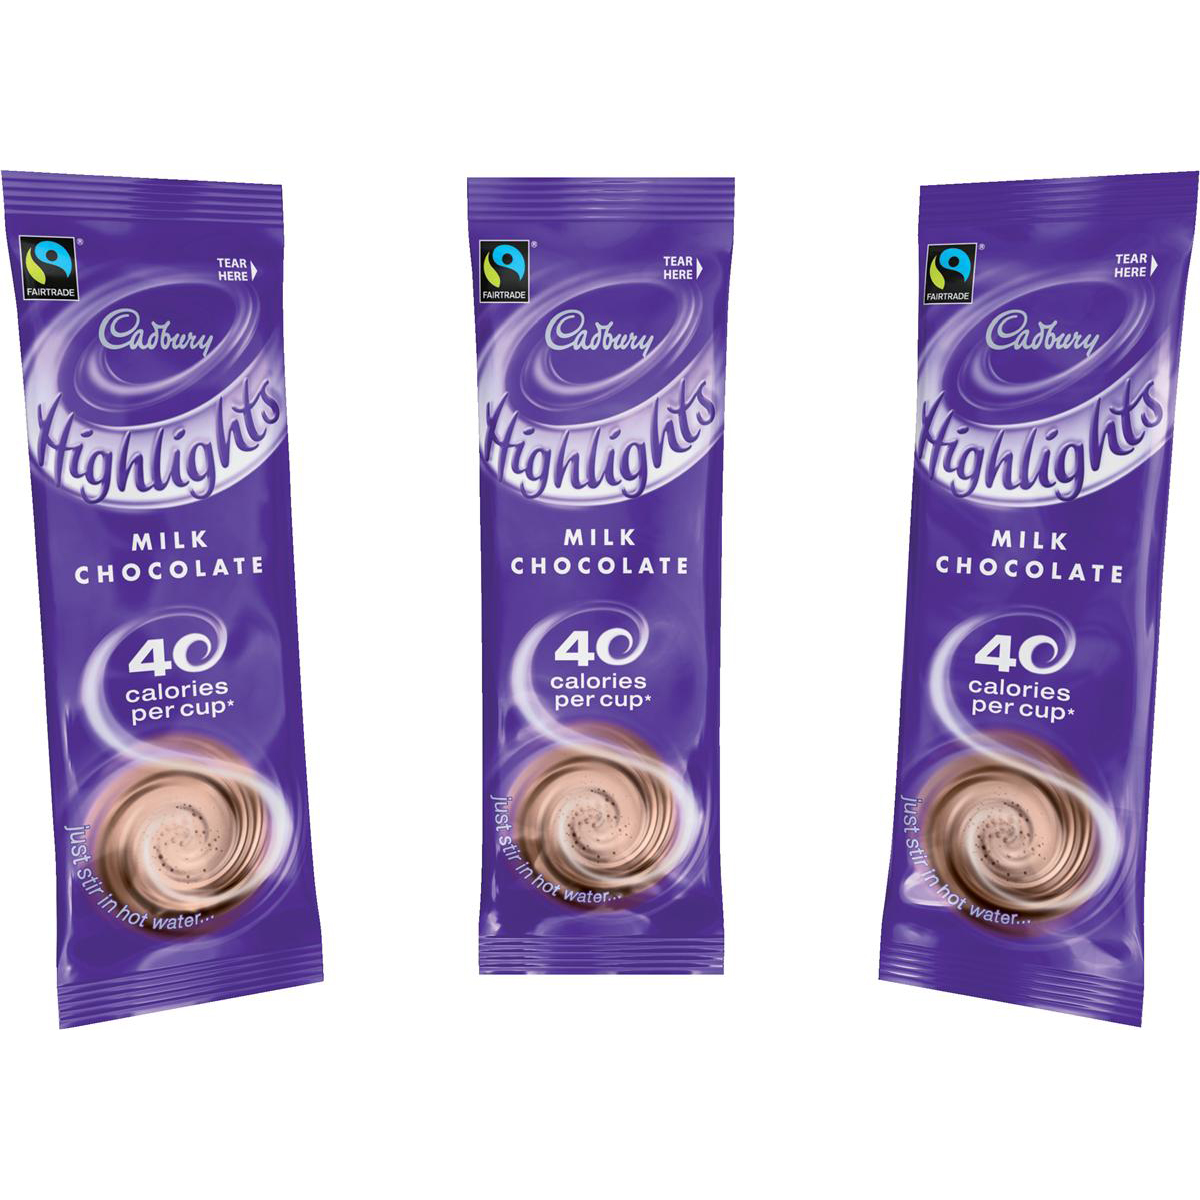 Hot Chocolate Cadbury Chocolate Highlights Fairtrade Hot Chocolate Powder Sachets Low Calorie Ref 0403173 Pack 30